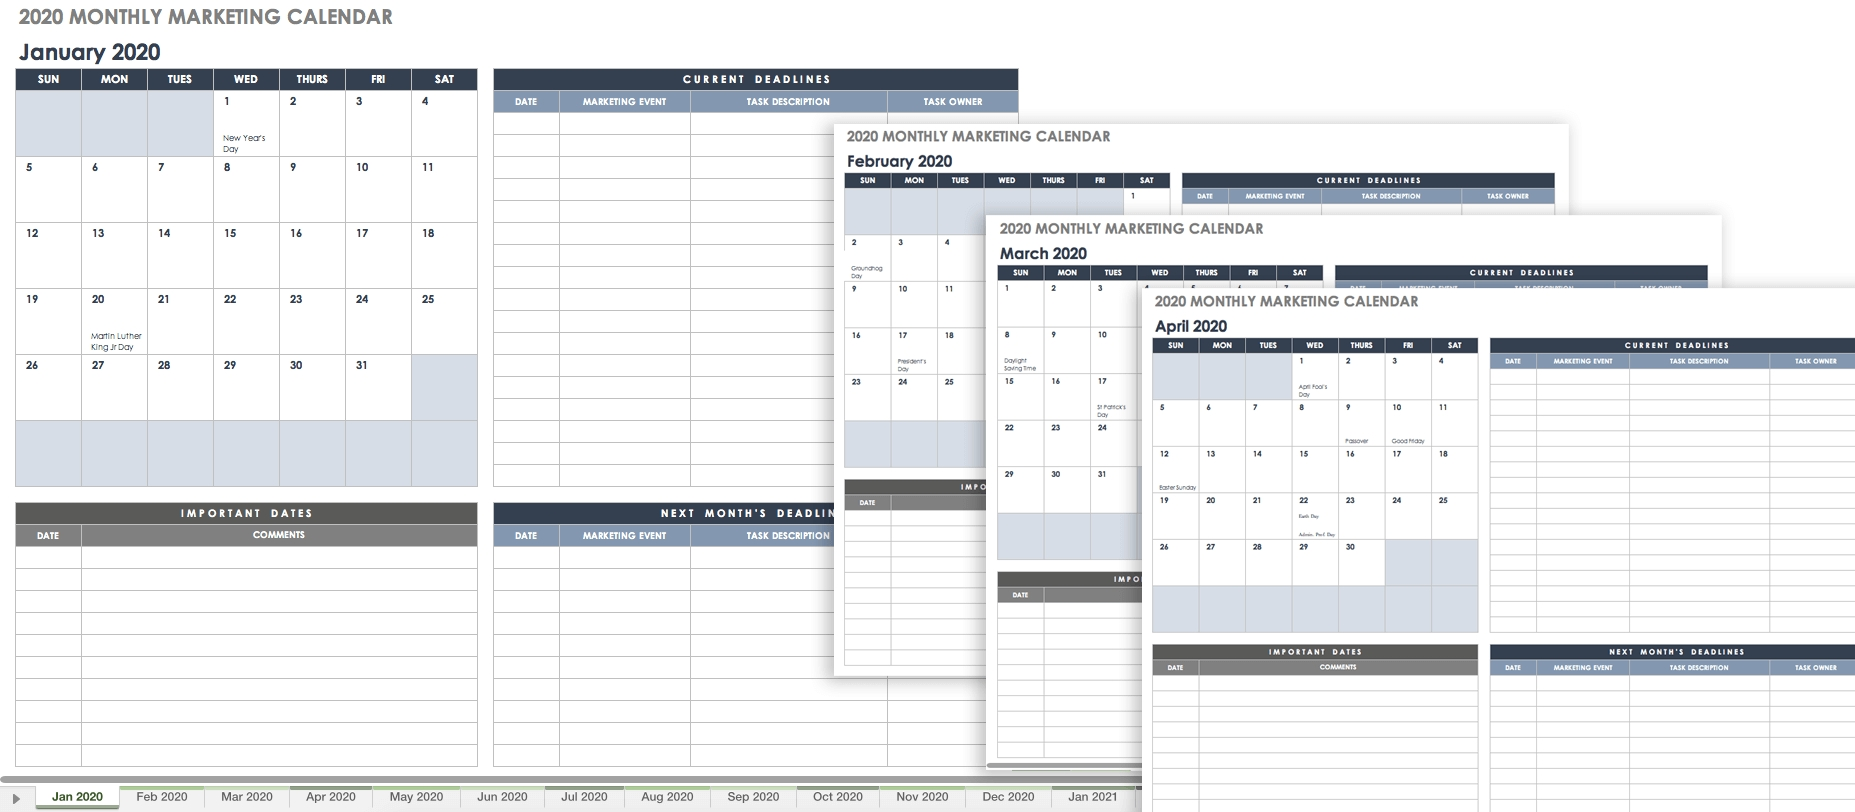 9 Free Marketing Calendar Templates For Excel - Smartsheet for Time And Action Calendar Templates